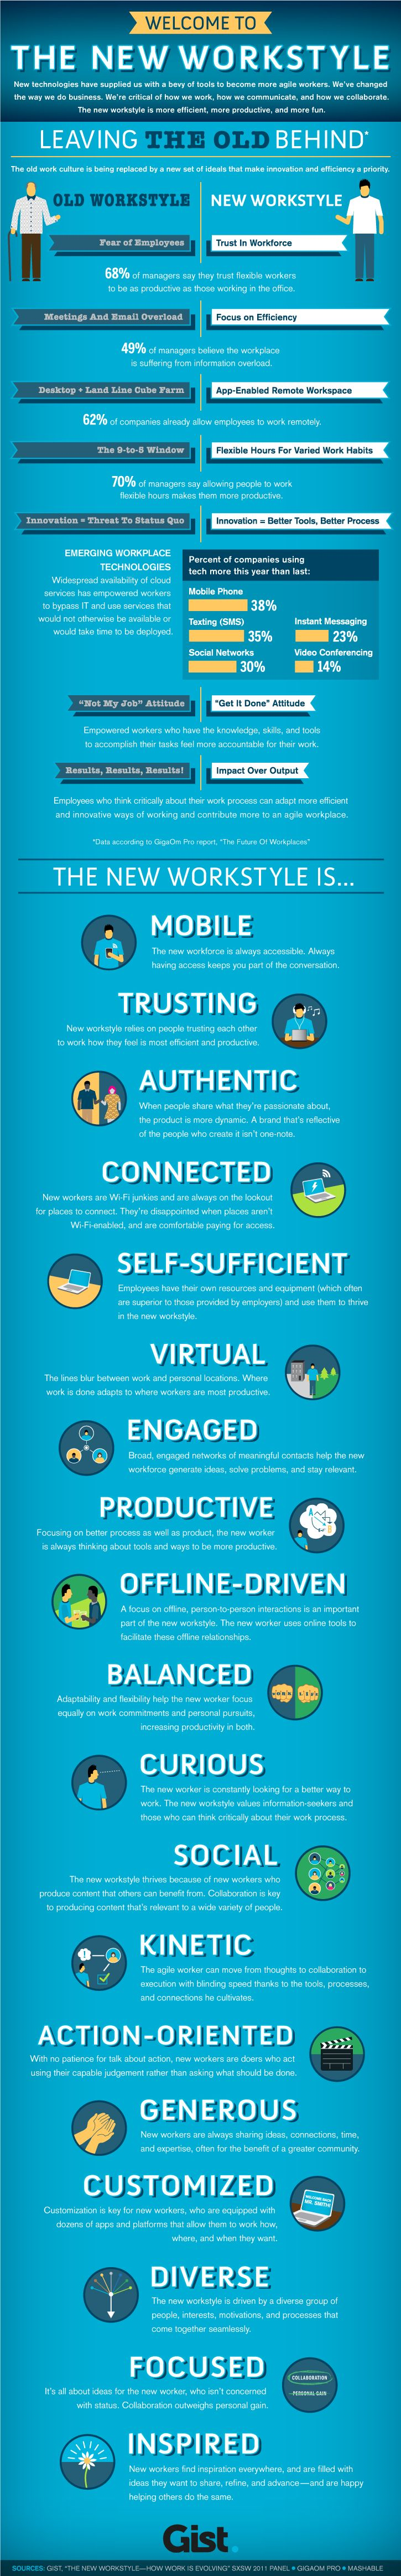 best images about generation y future of work infographics on deeper consideration of social business organisational transformation workplace learning school education data analytics there s also a healthy dose of